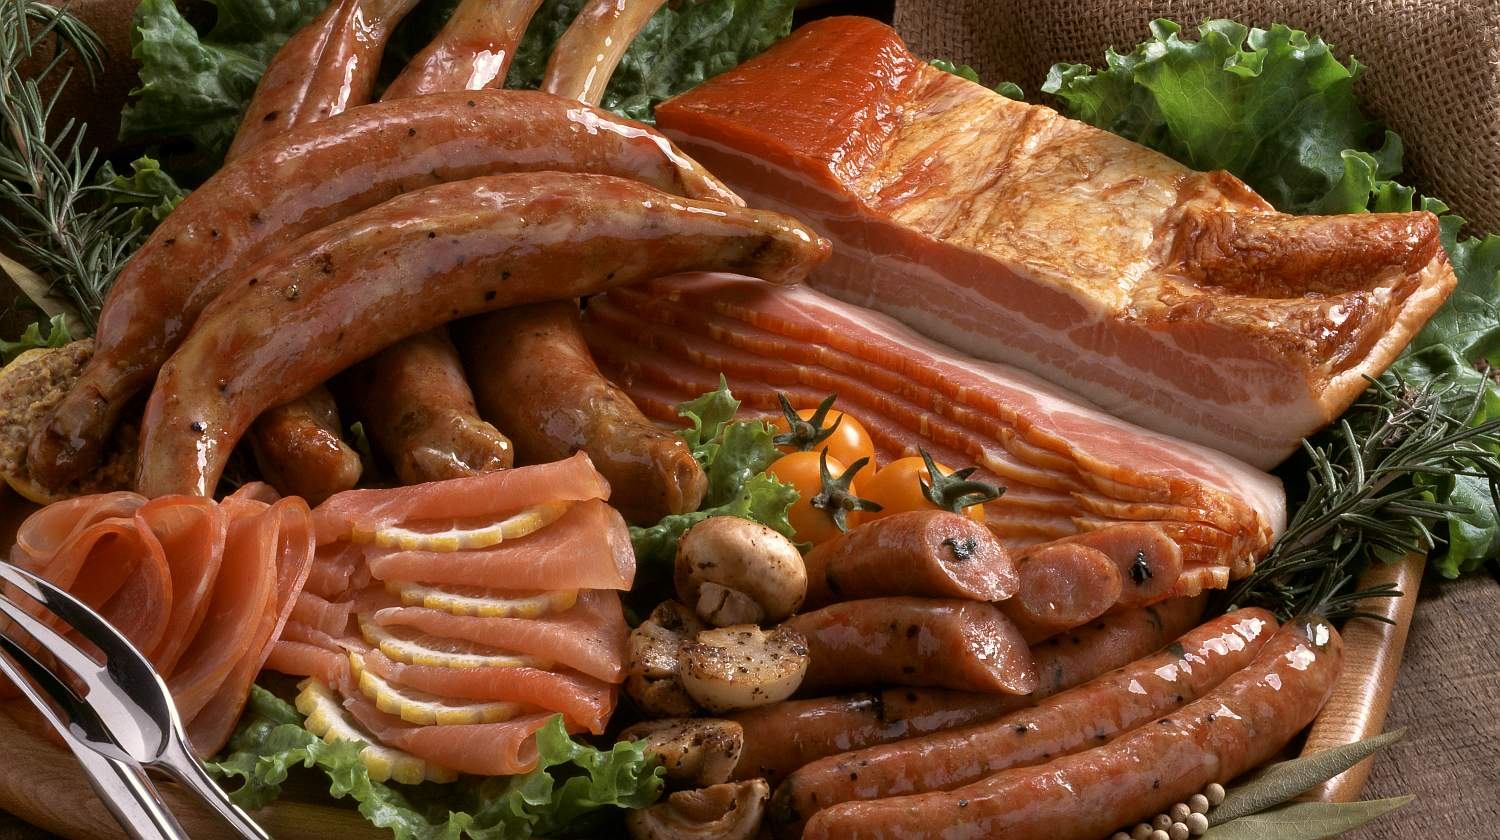 How healthy is it to eat smoked and processed meat?